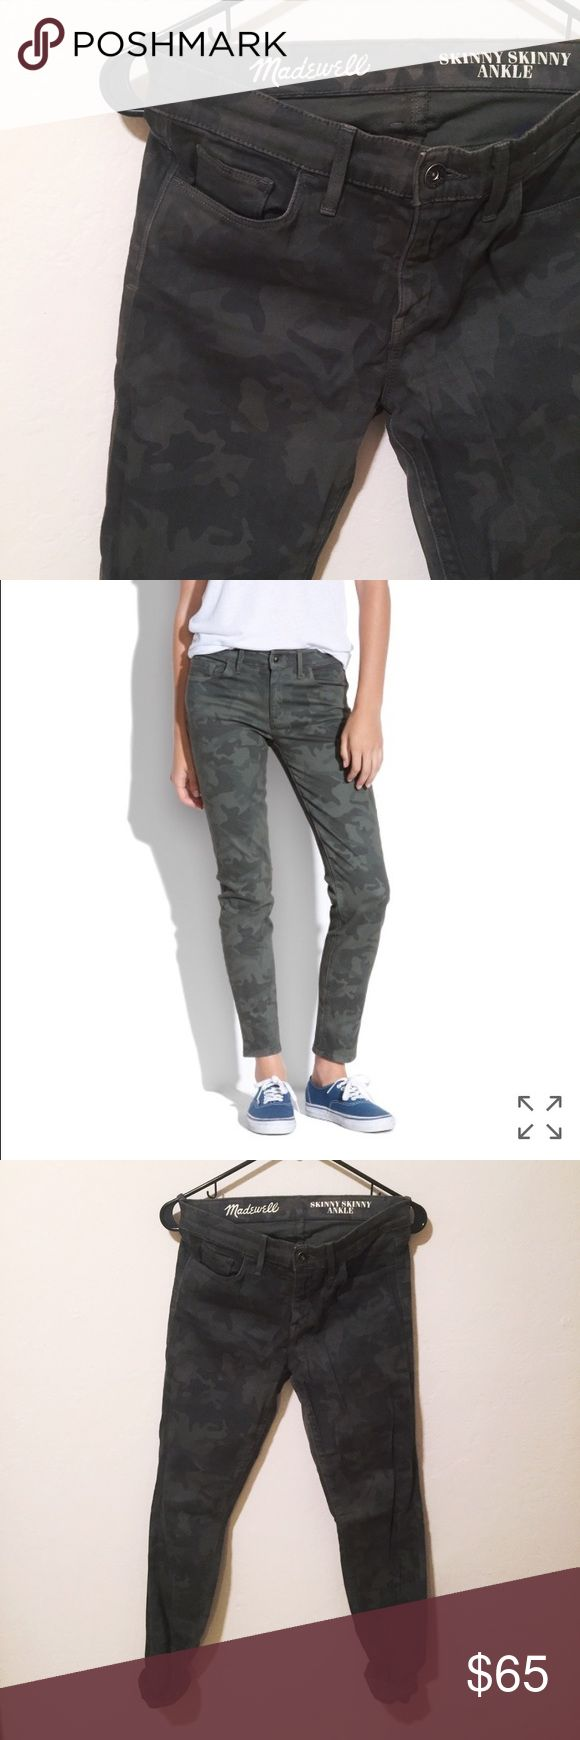 Madewell skinny skinny ankle camo jeans perfect condition. a great subtle dark camo jean! Madewell Jeans Ankle & Cropped